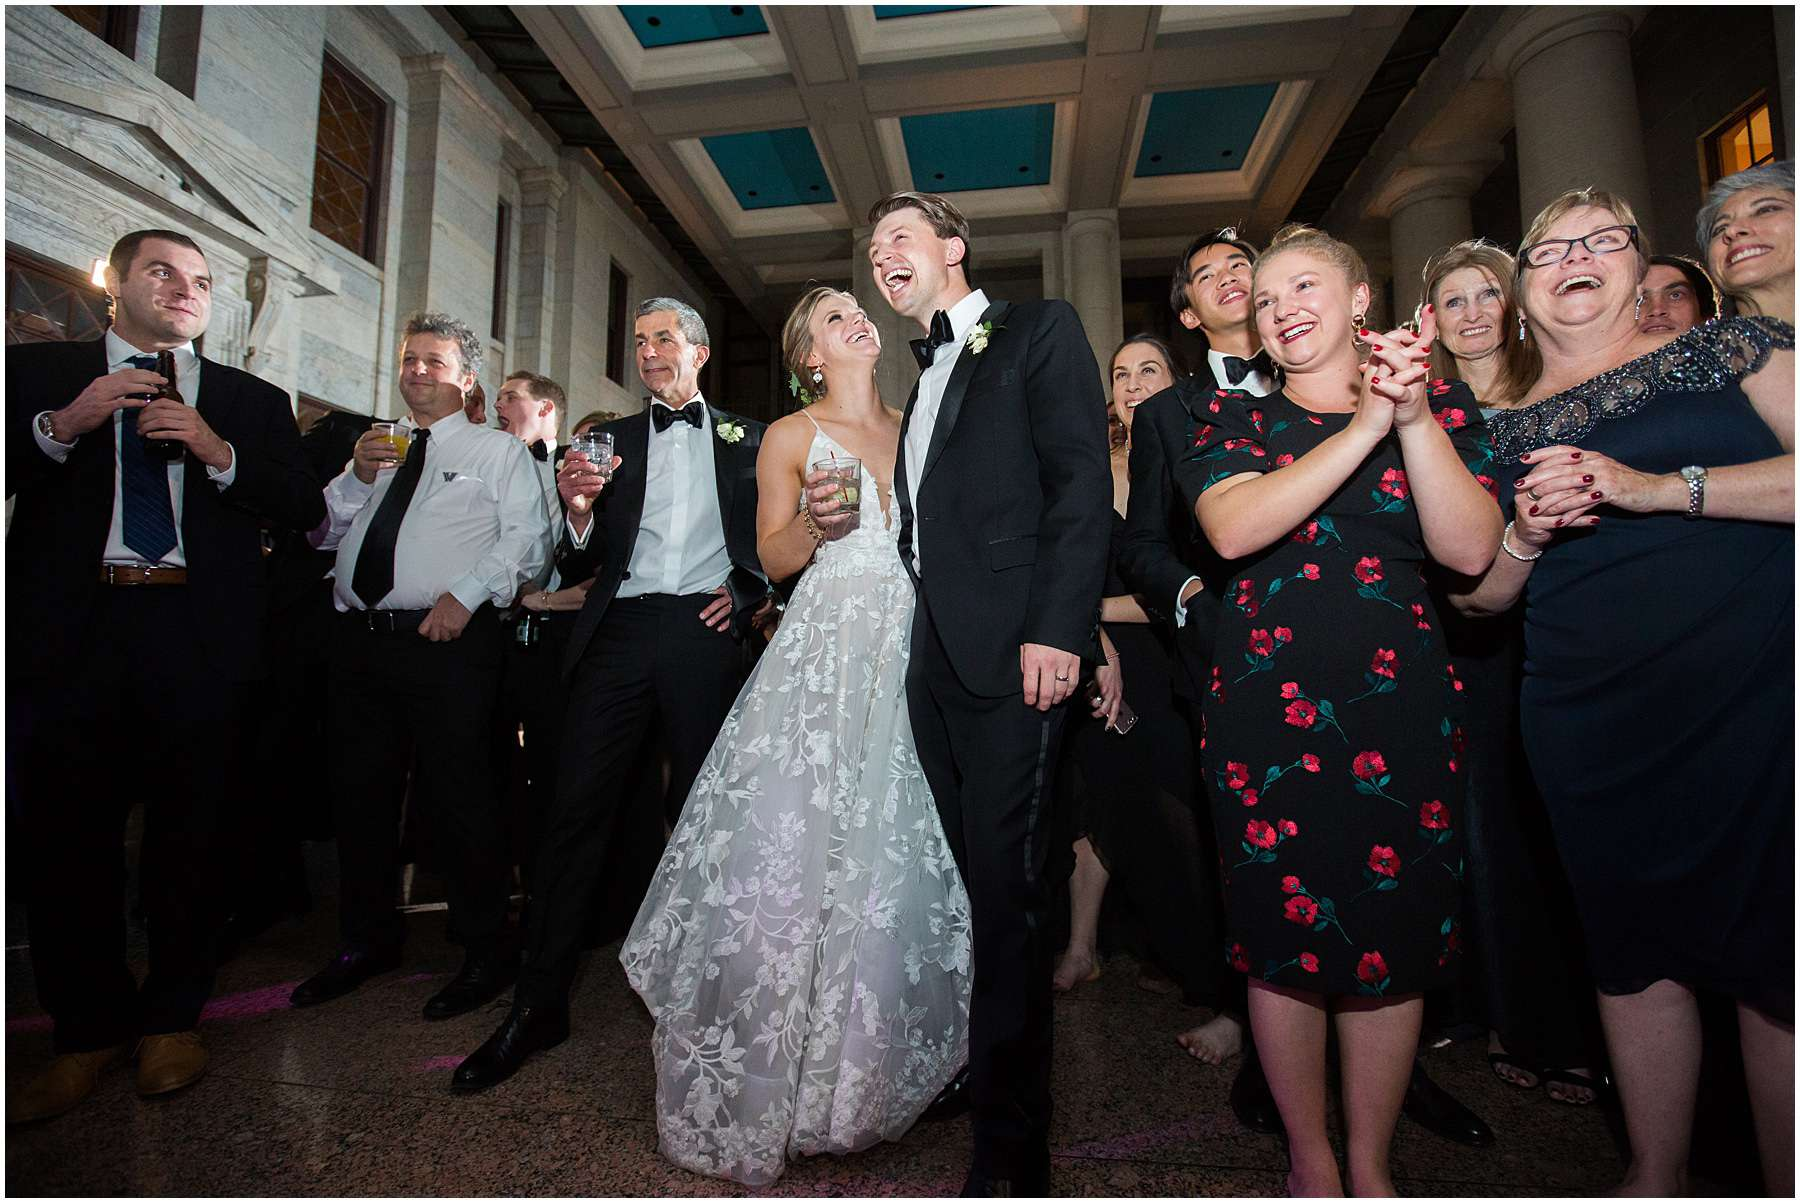 Wedding at the Ohio Statehouse | Columbus Ohio Weddings 230